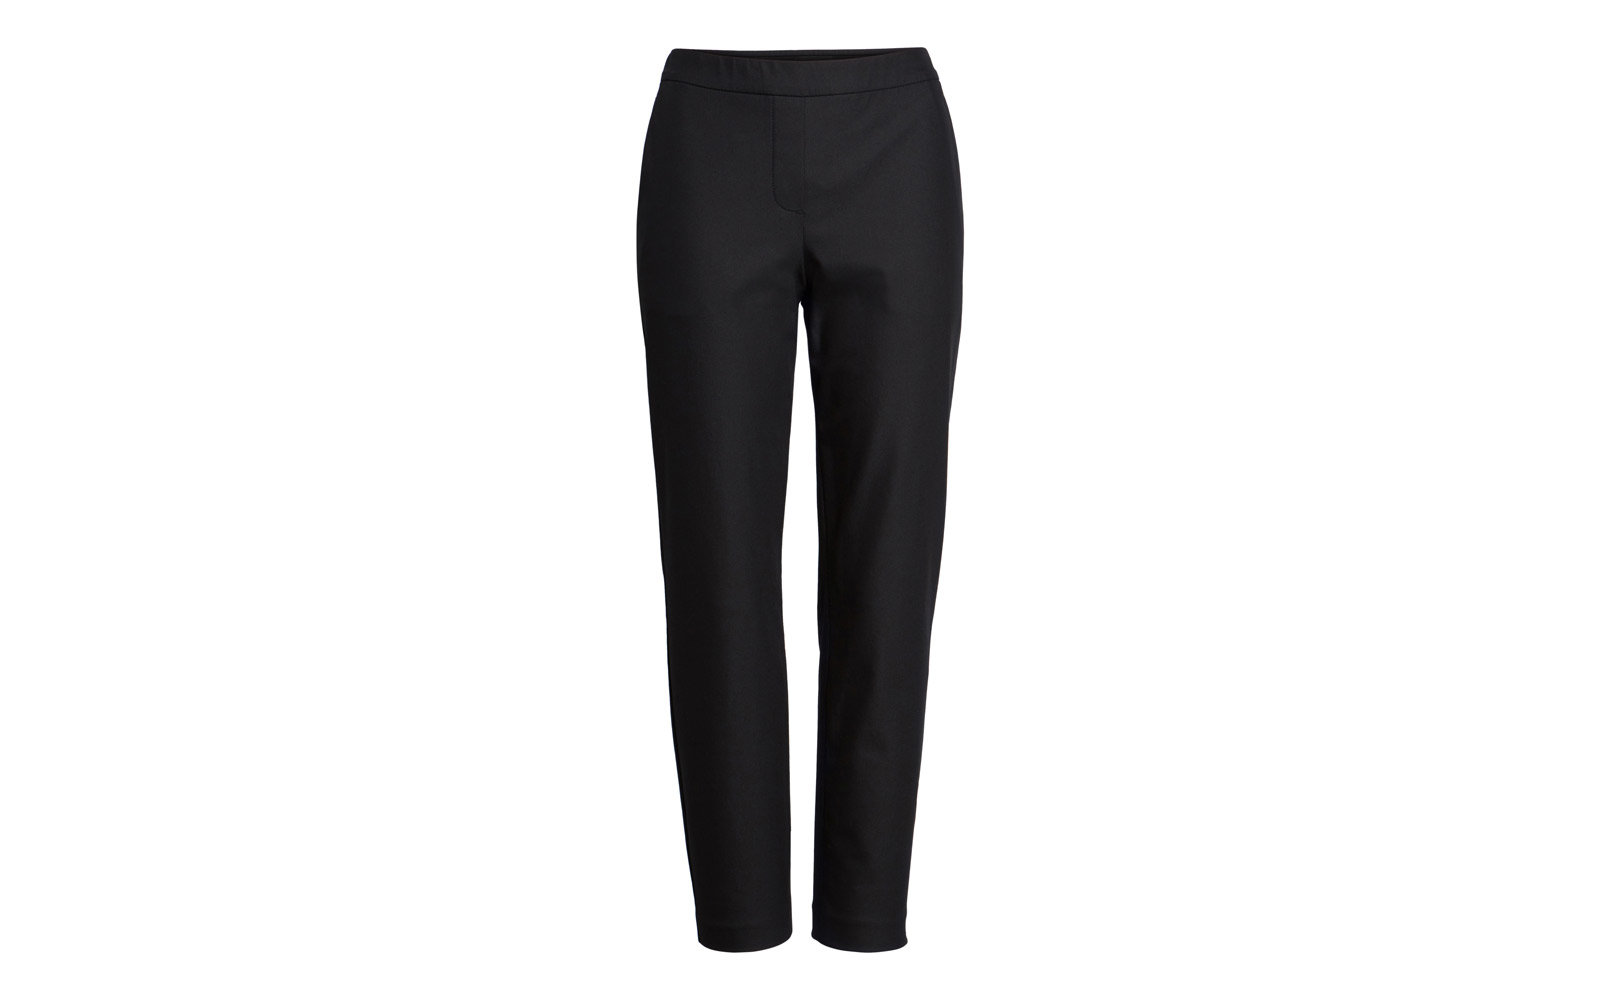 Theory Cropped Stretch Pants